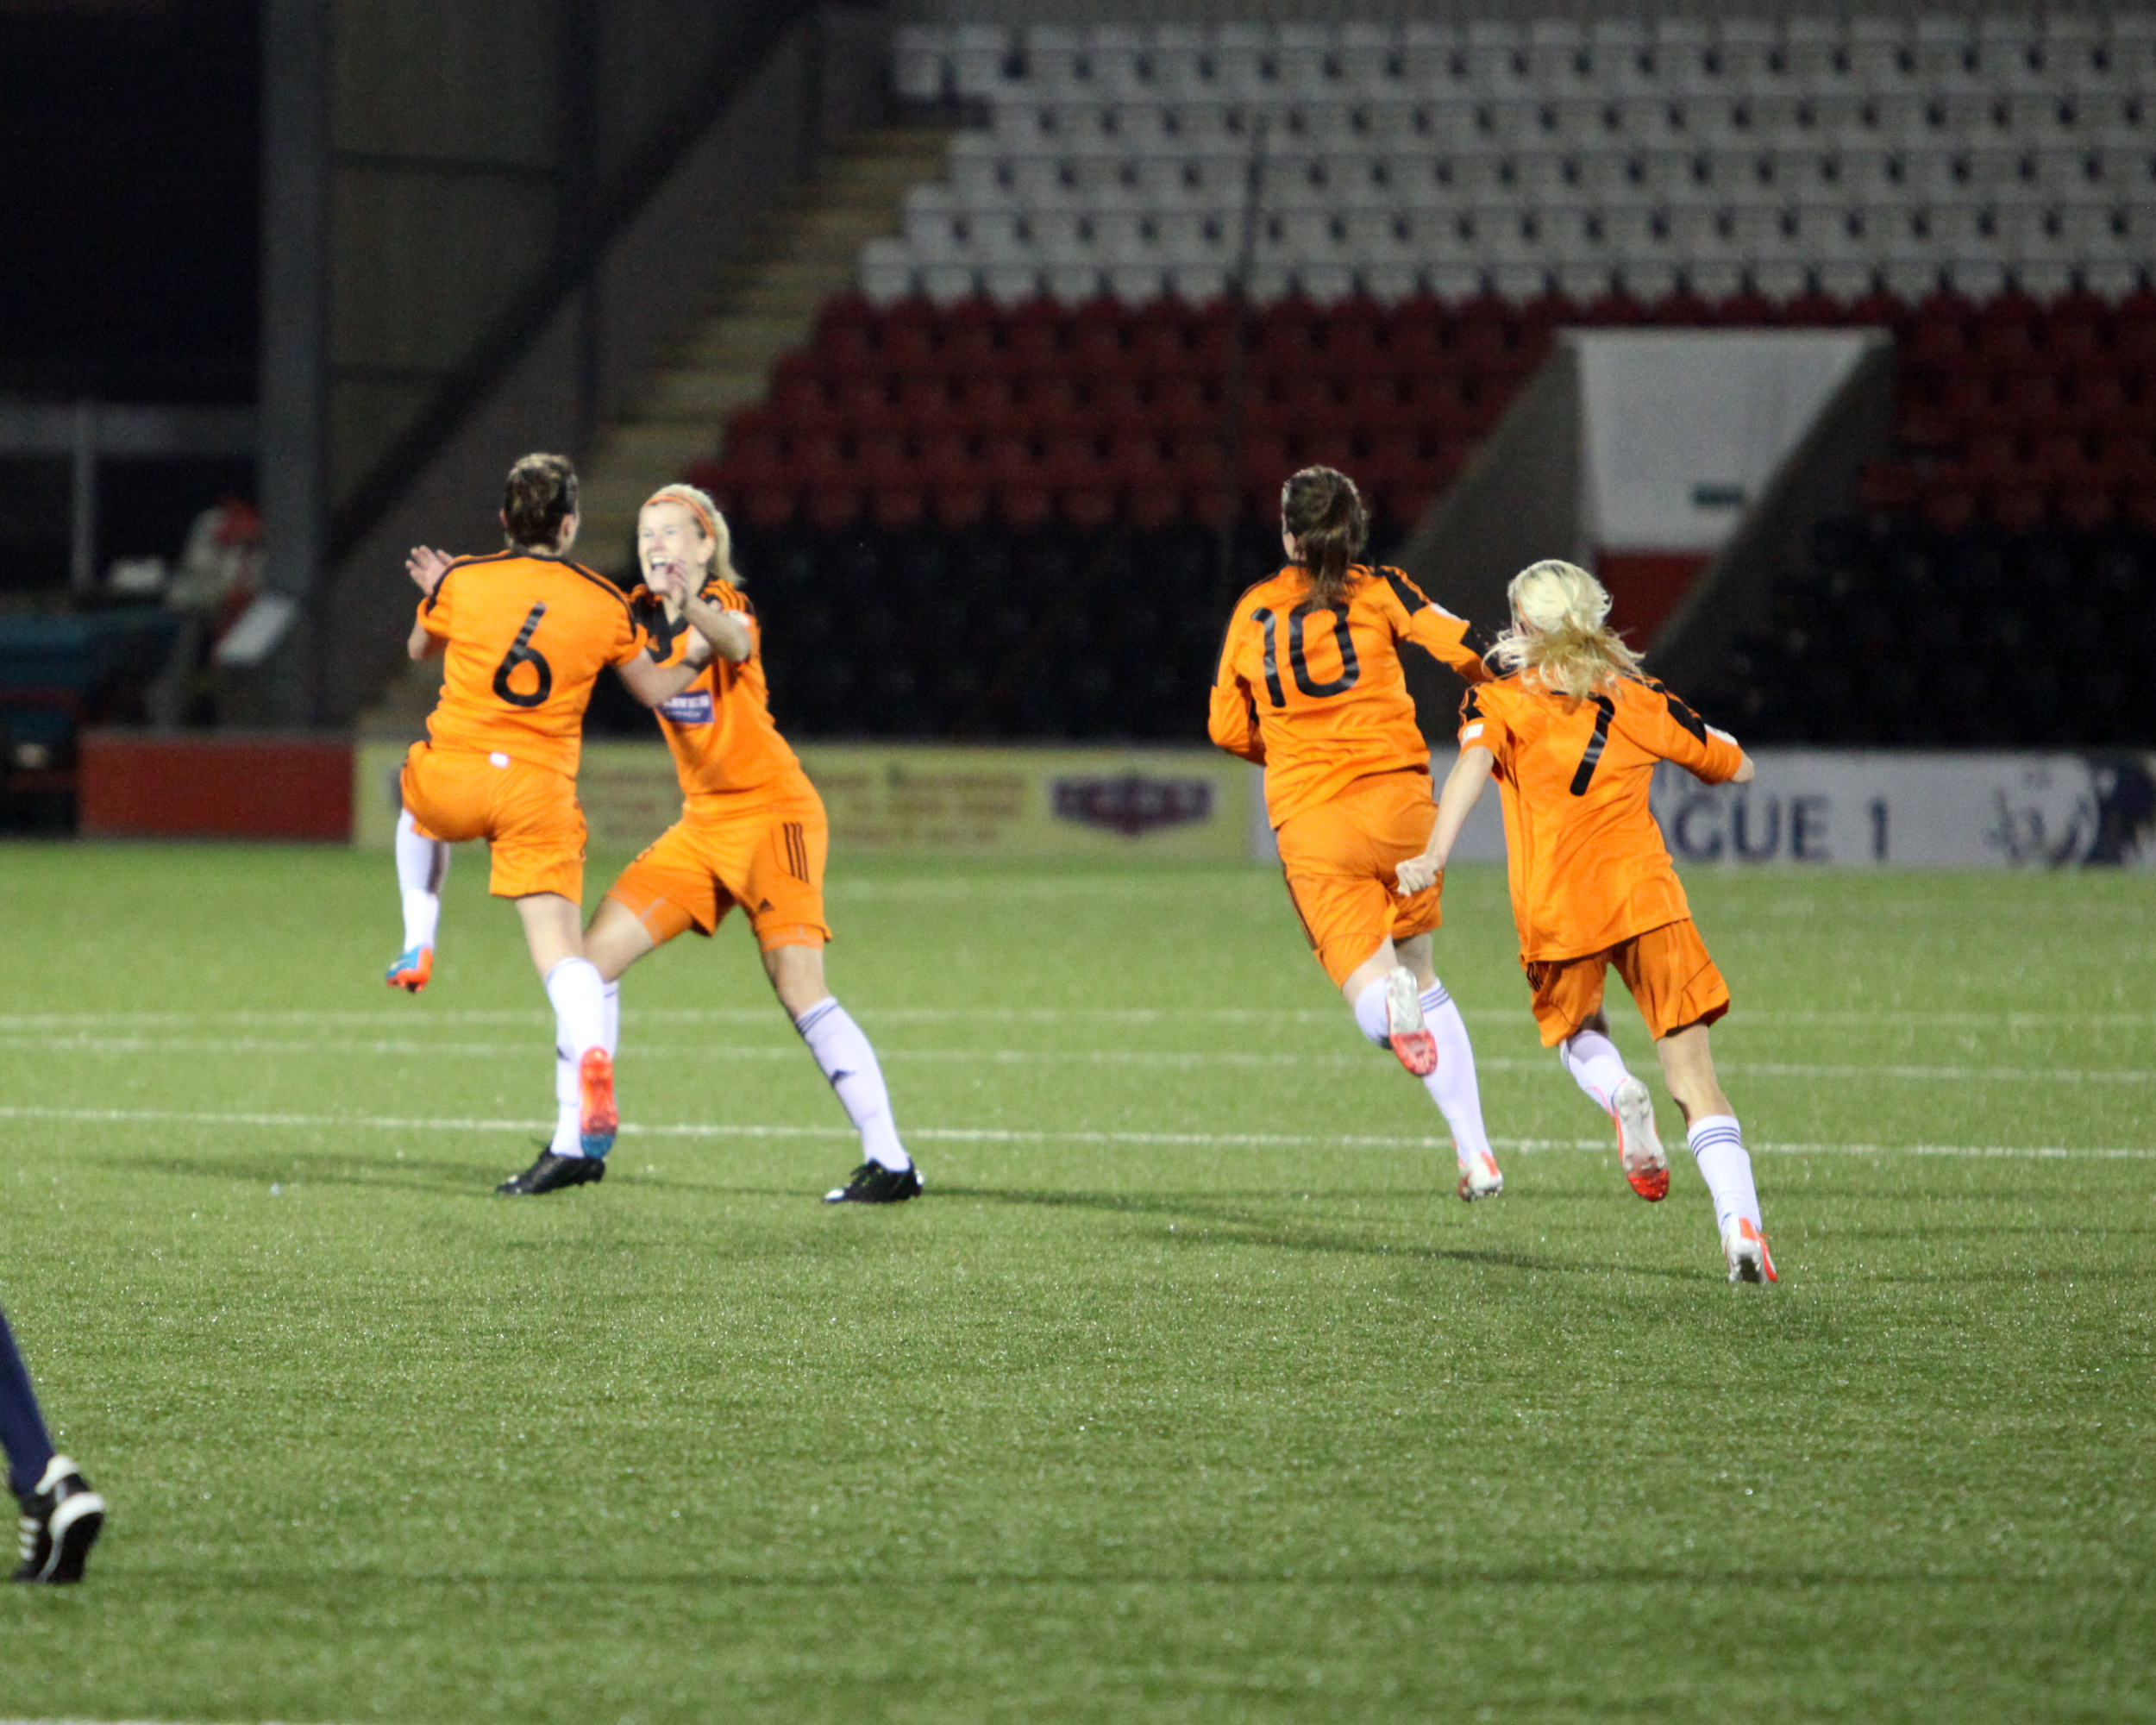 Jo Love grabs City's first goal of the night. Image by Andy Buist.